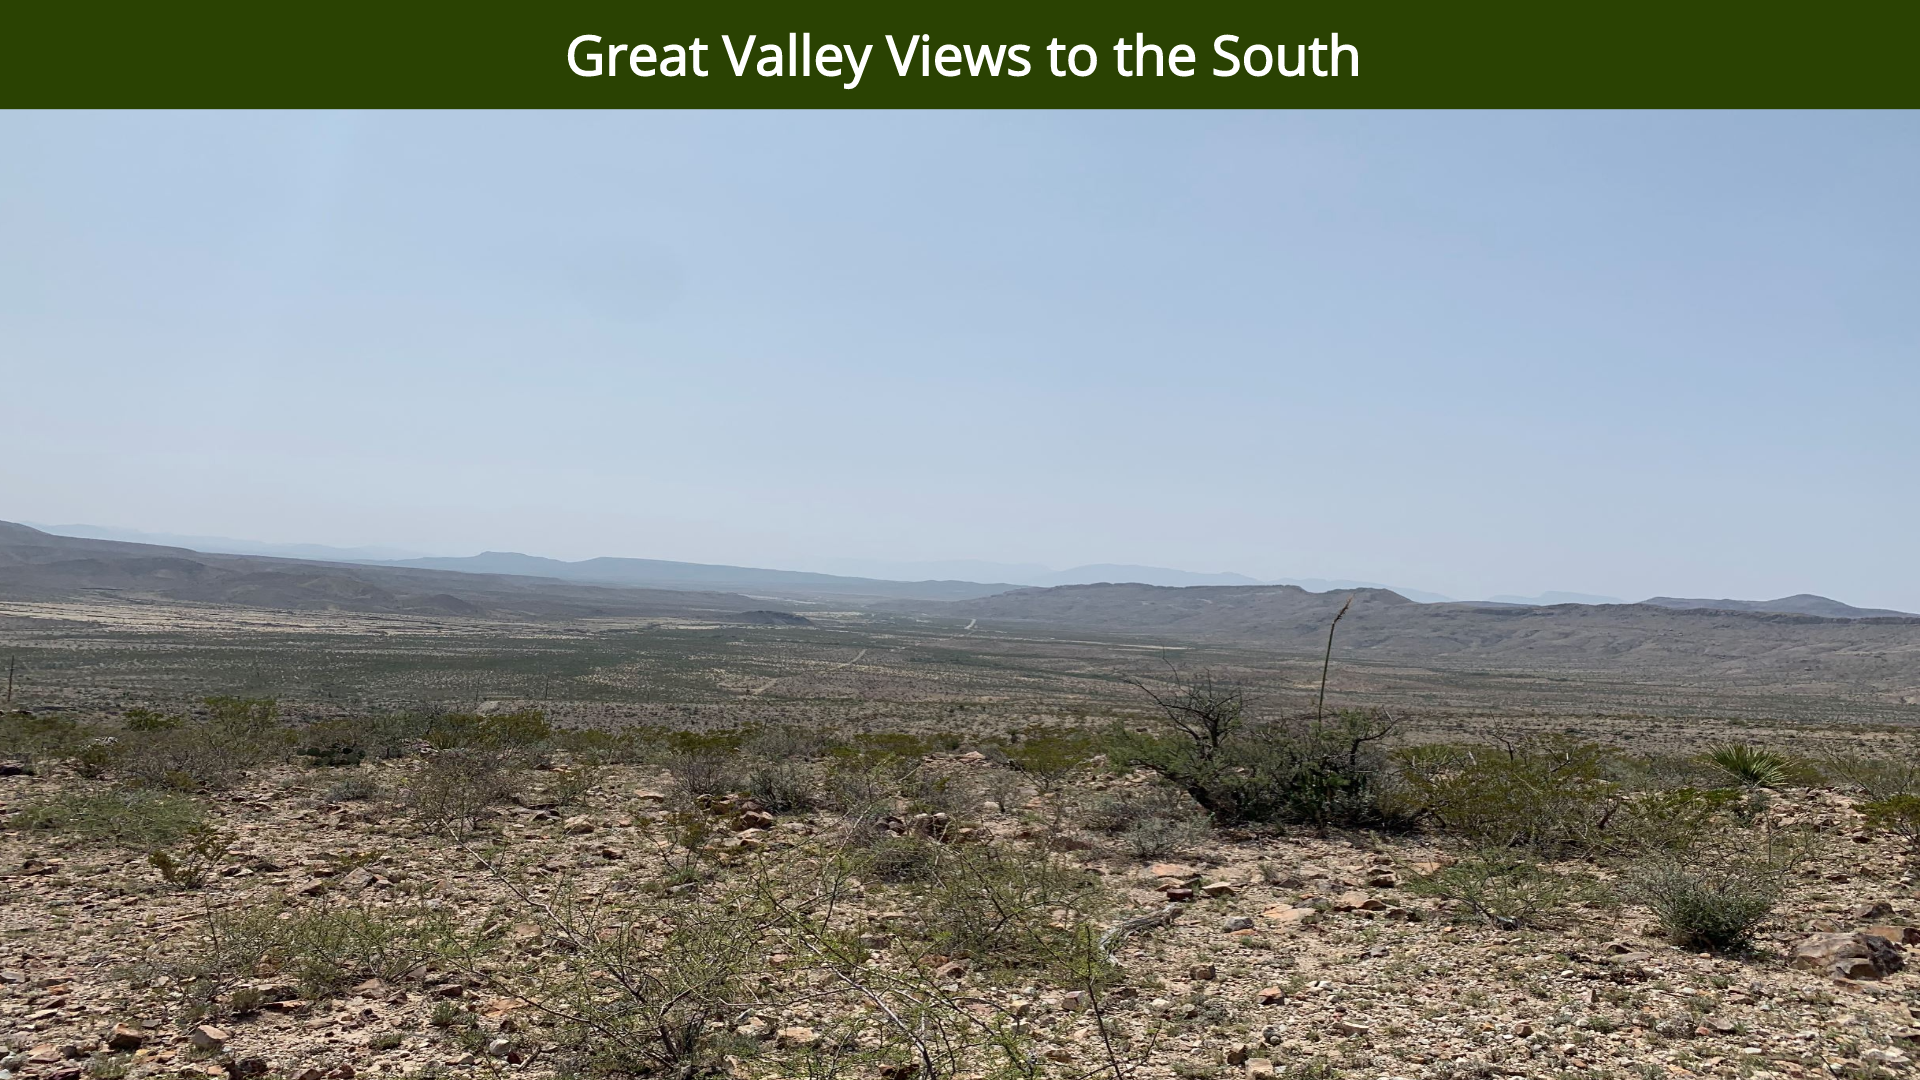 Great Valley Views to the South